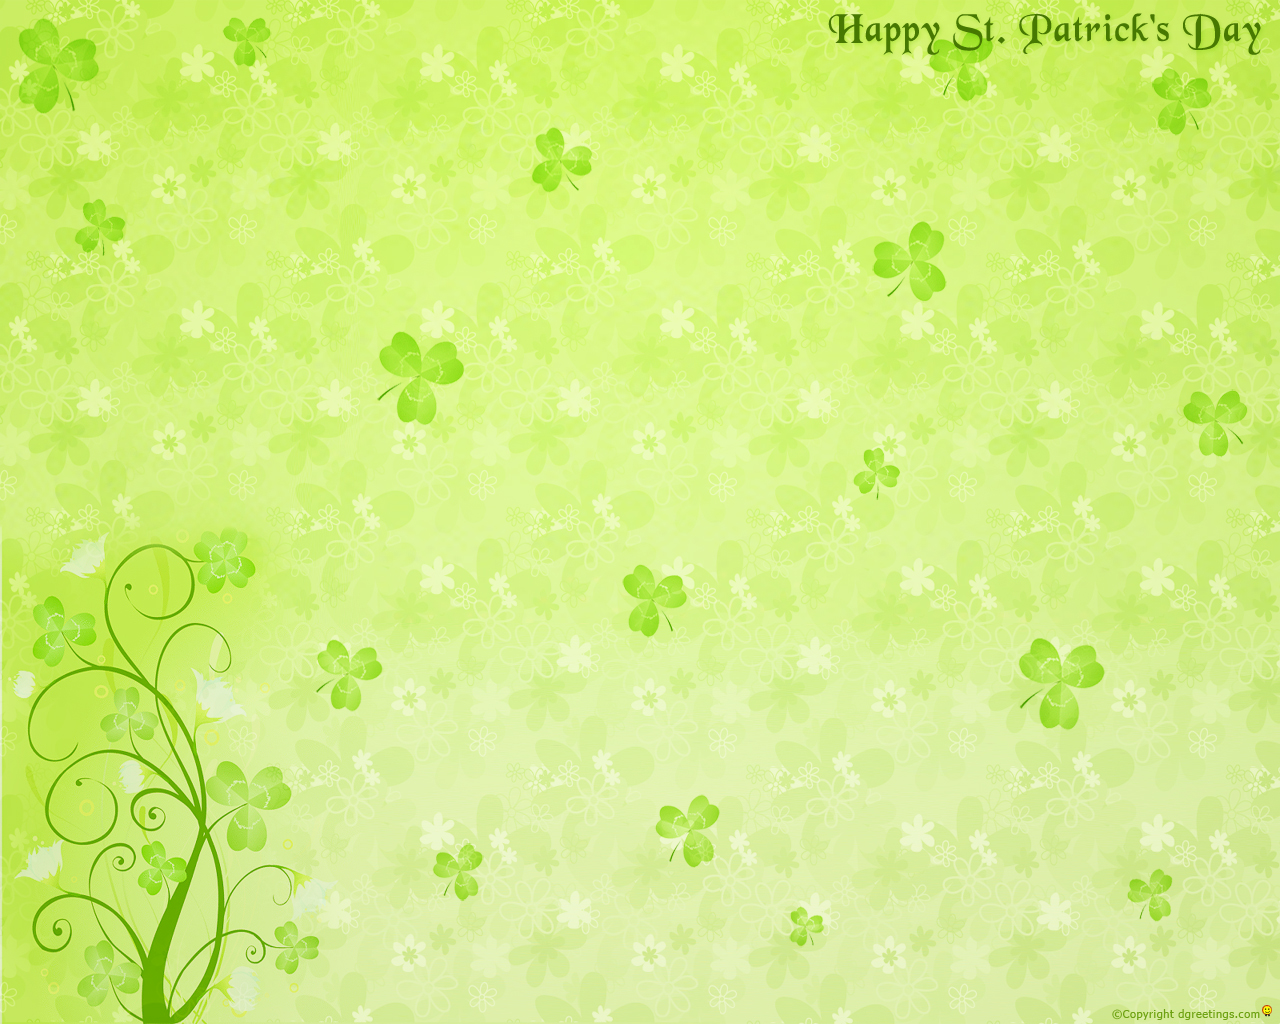 st patricks day wallpapertop st patricks day wallpaper full size 1280x1024